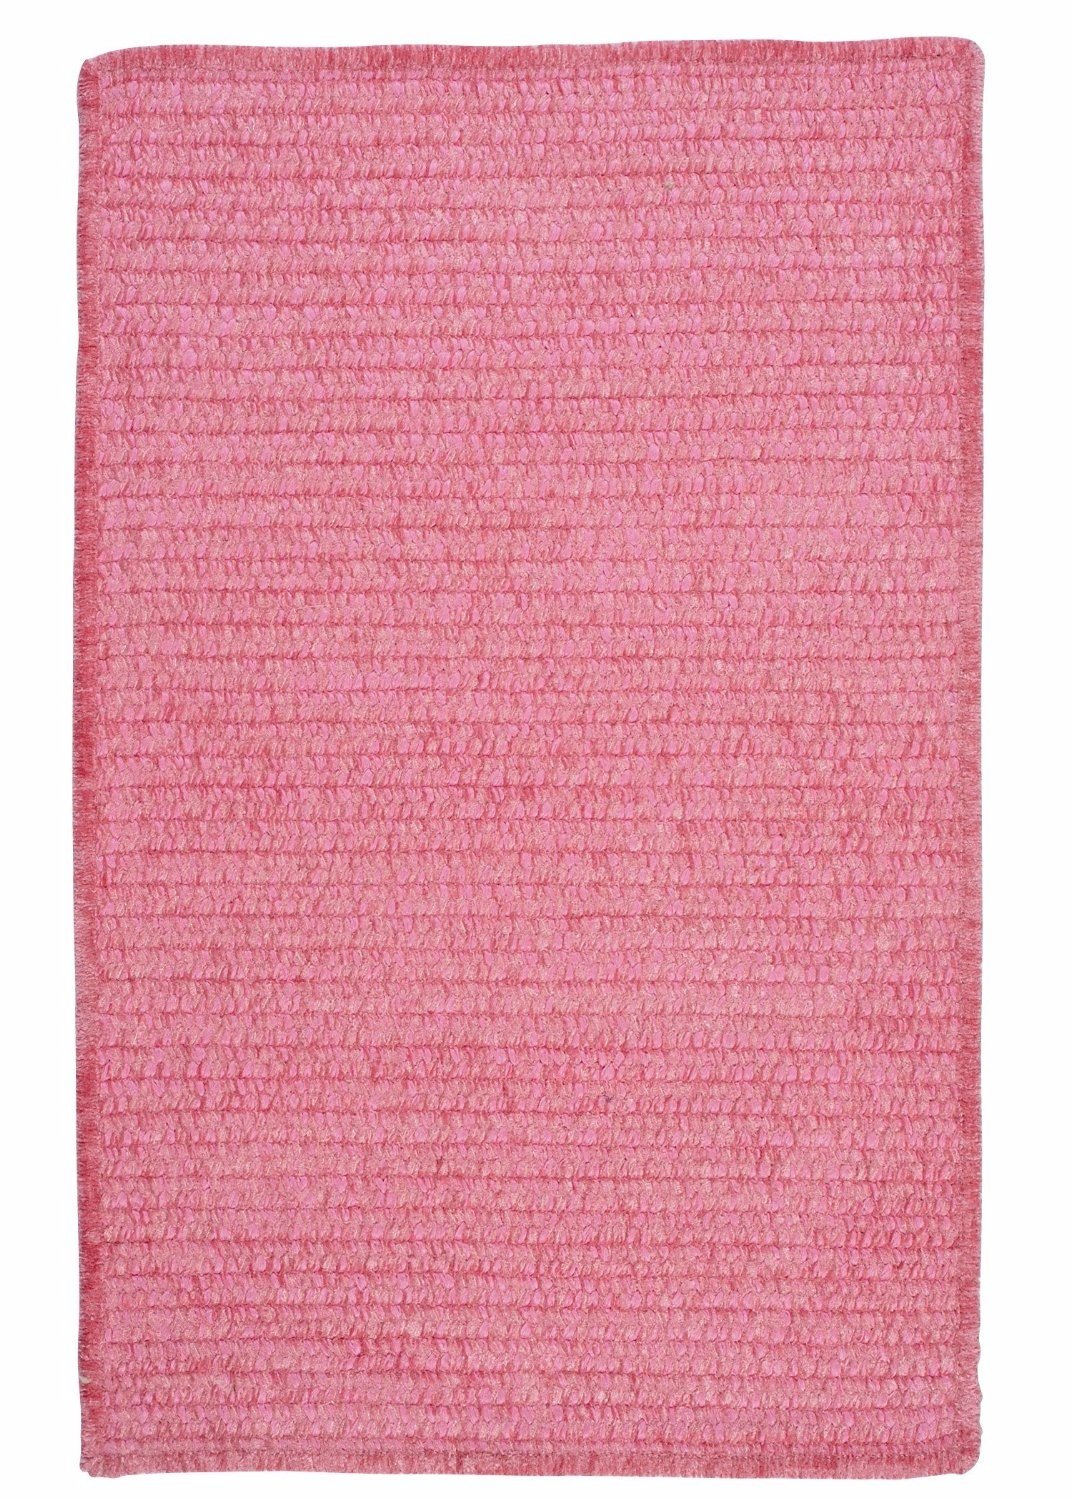 Ambiant Silken Rose Chair Pad M701 Kids / Teen Pink 15''X15'' (SET 4) - Area Rug